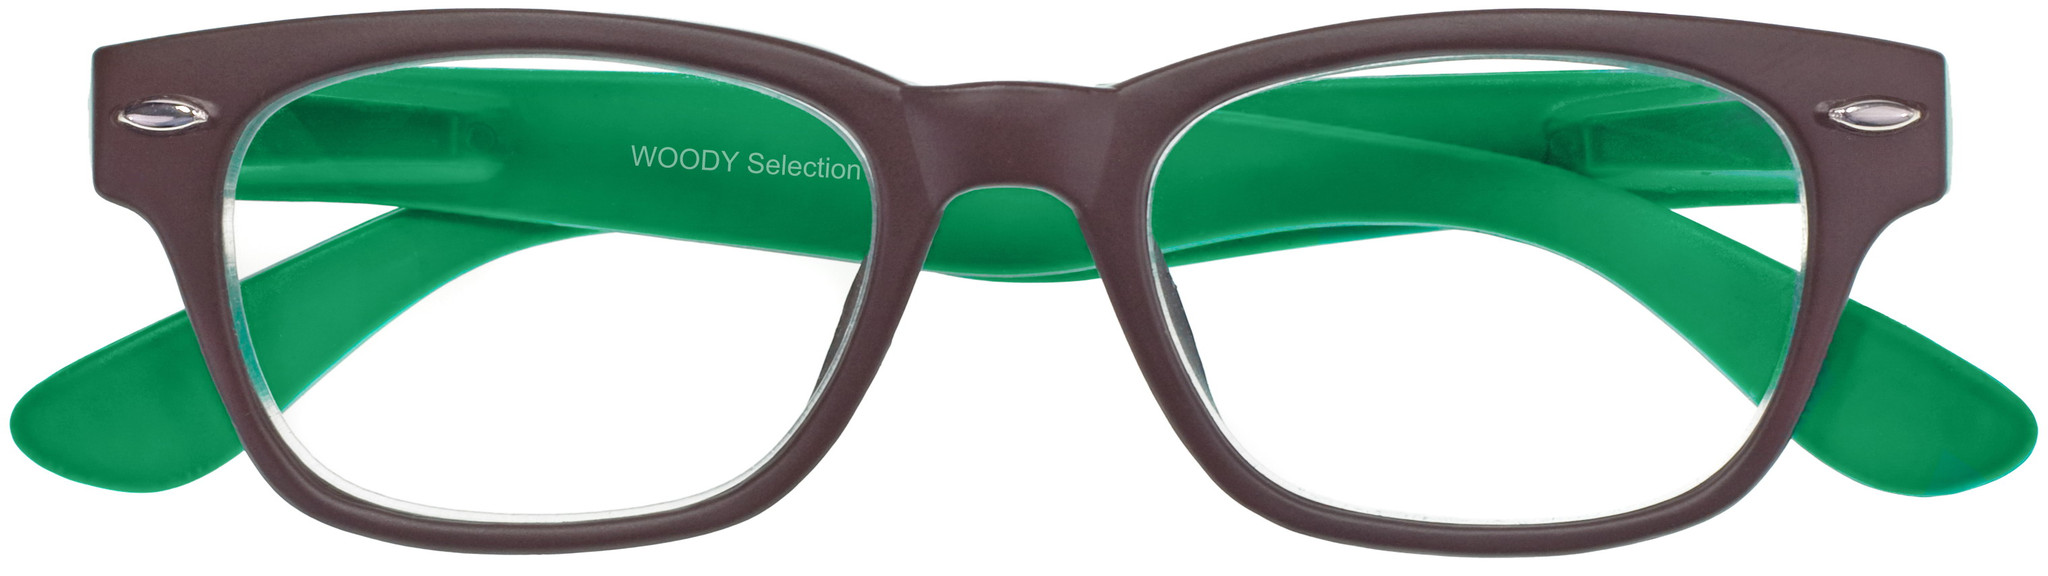 Woody Selection Grey-Green Readers by I Need You Readers